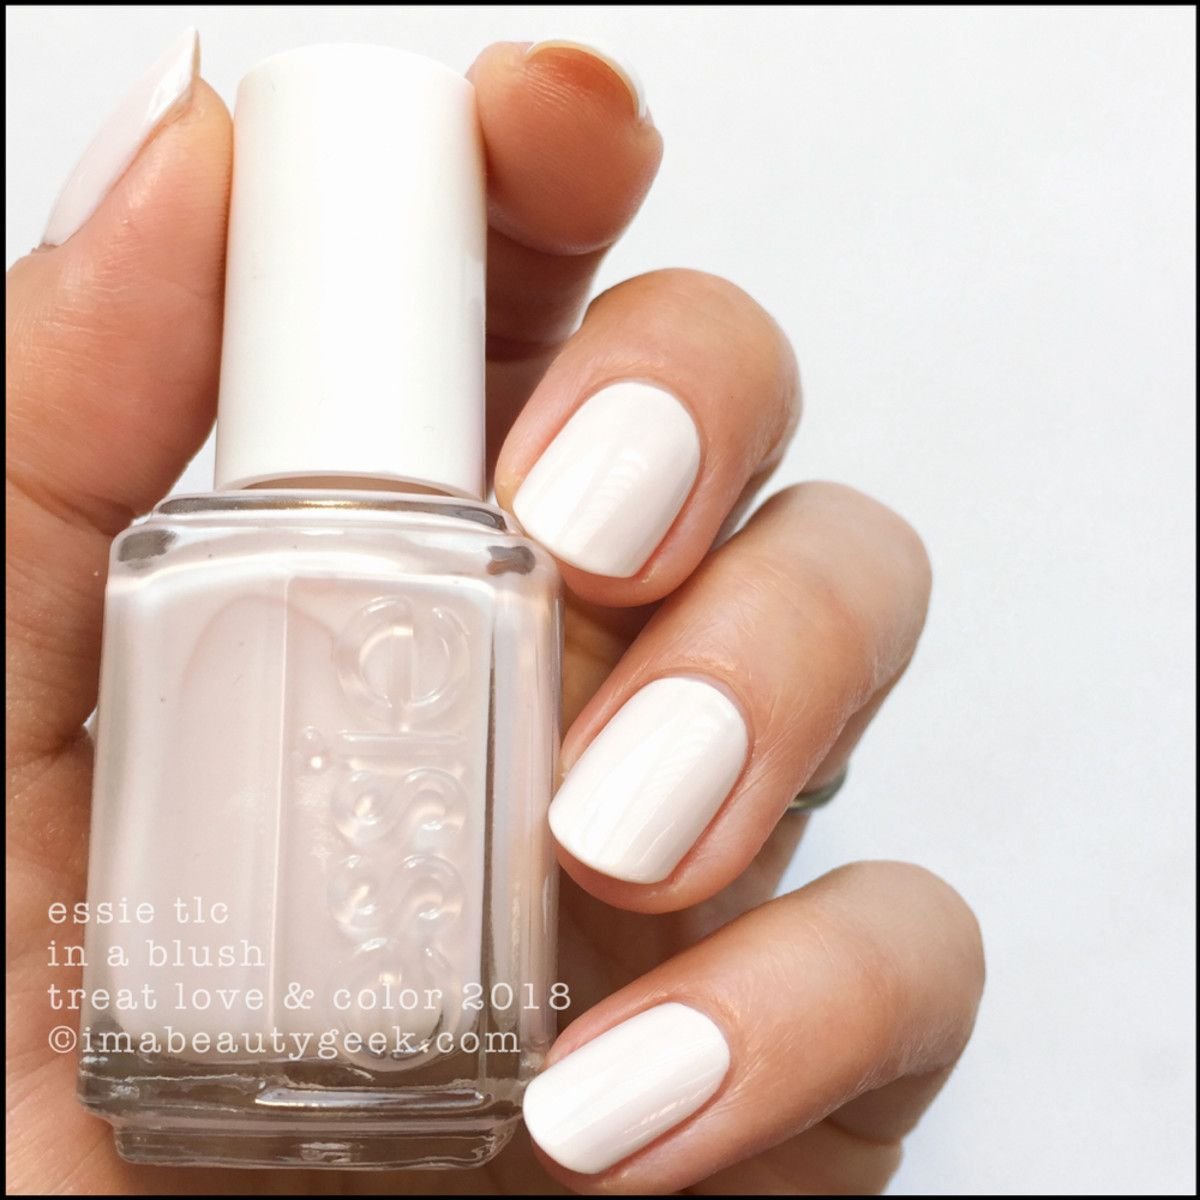 ESSIE TREAT LOVE & COLOR 2018 | Swatch, Top coat and Nail nail